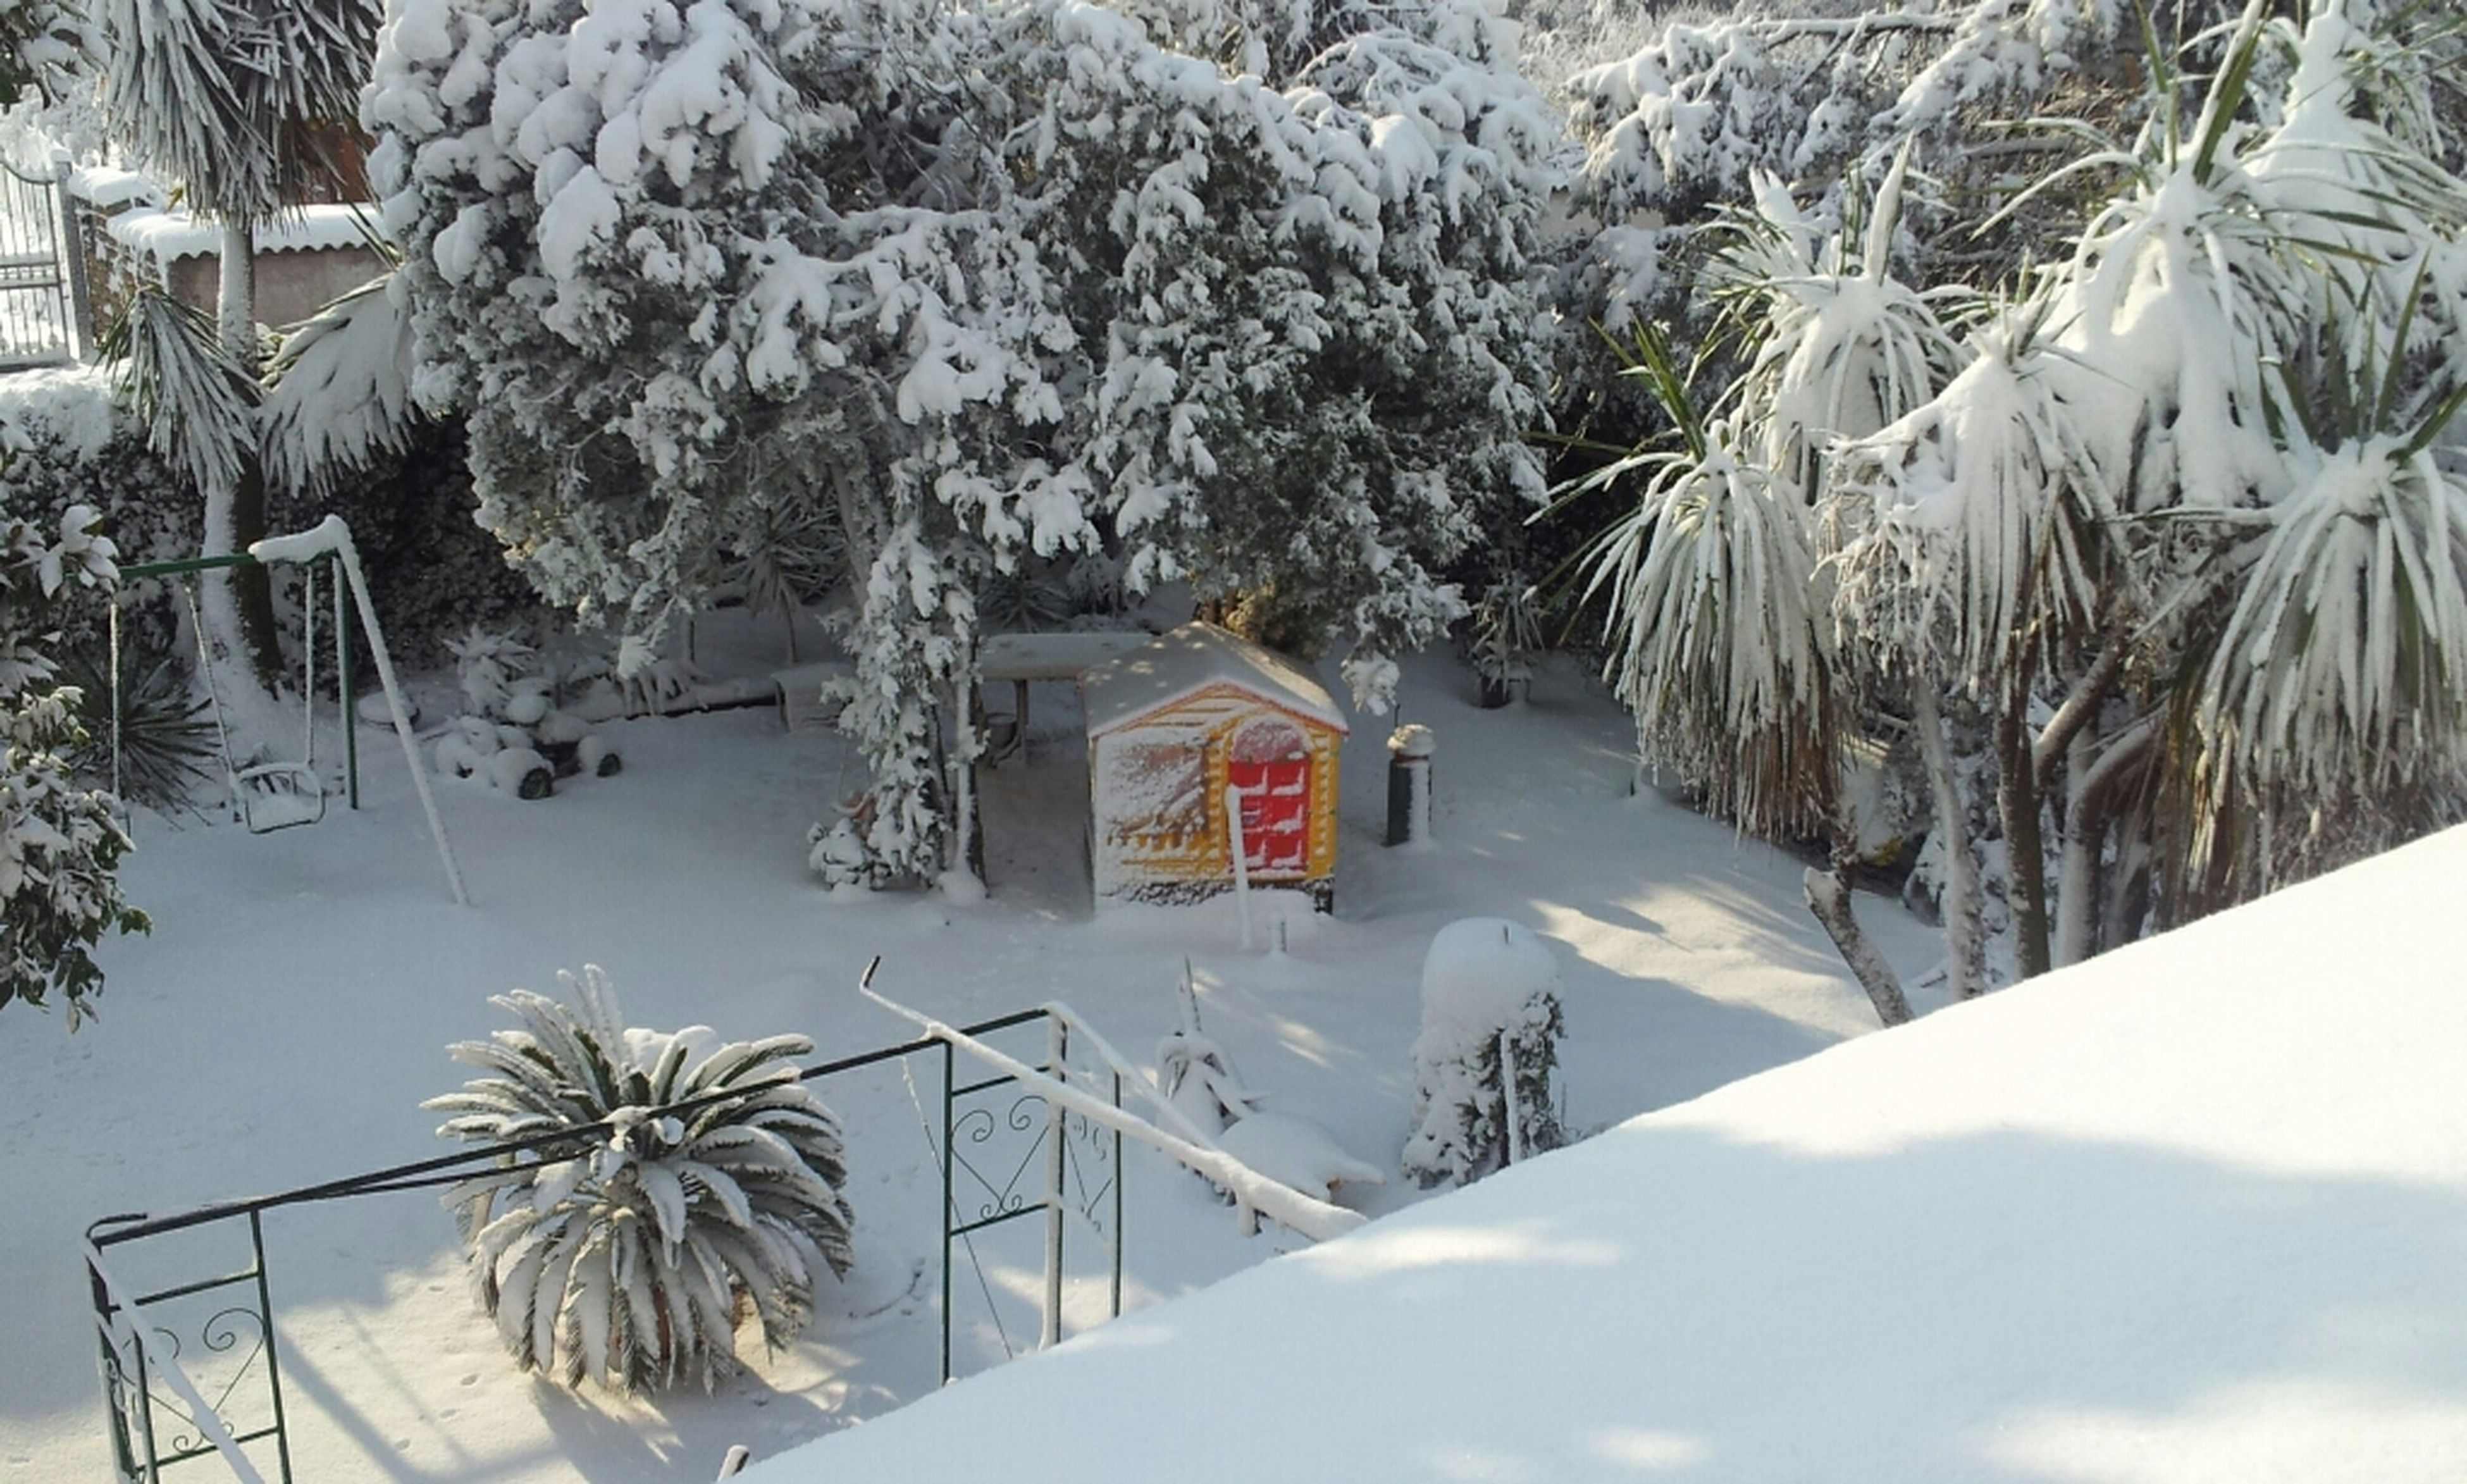 snow, winter, cold temperature, building exterior, tree, architecture, built structure, house, season, covering, weather, white color, nature, residential structure, high angle view, bare tree, day, covered, outdoors, no people